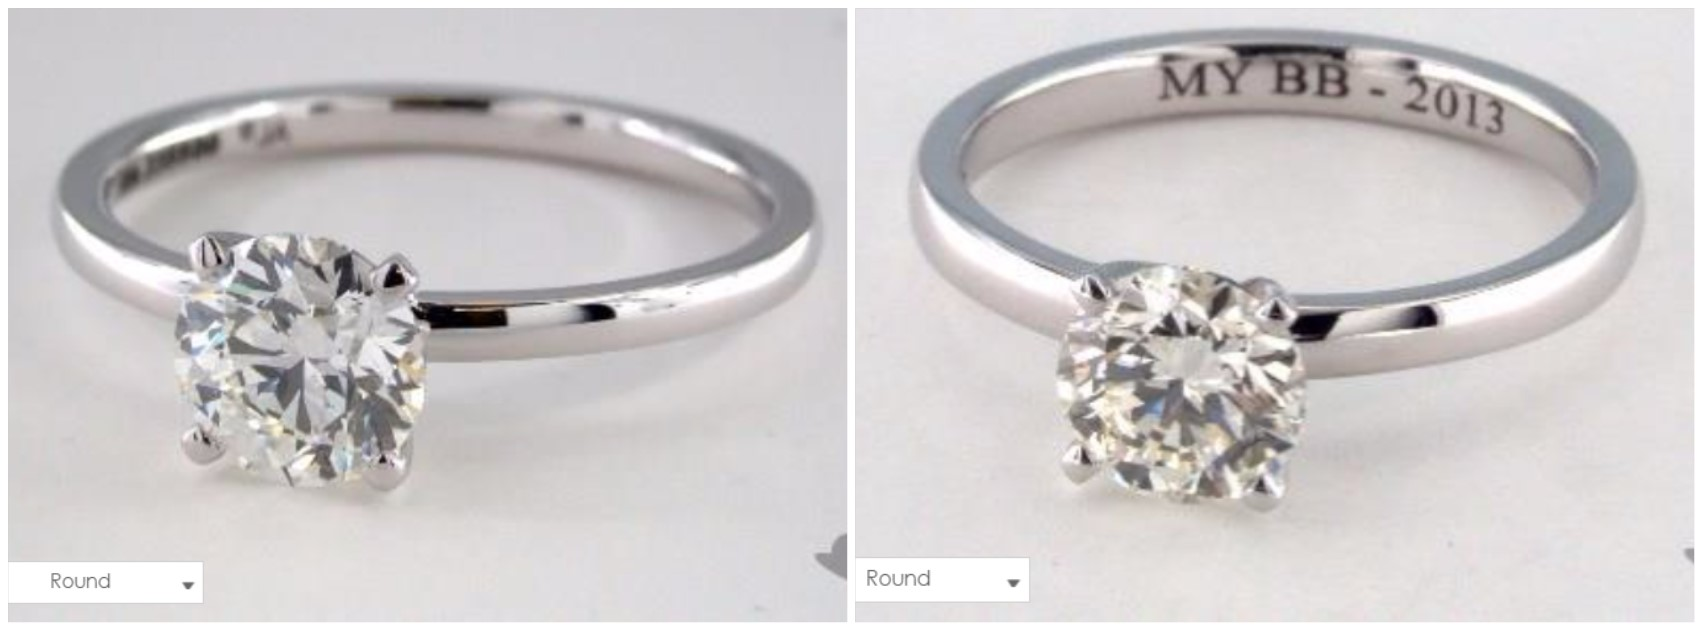 Why H Diamond Color Is Good Enough For The Best Value